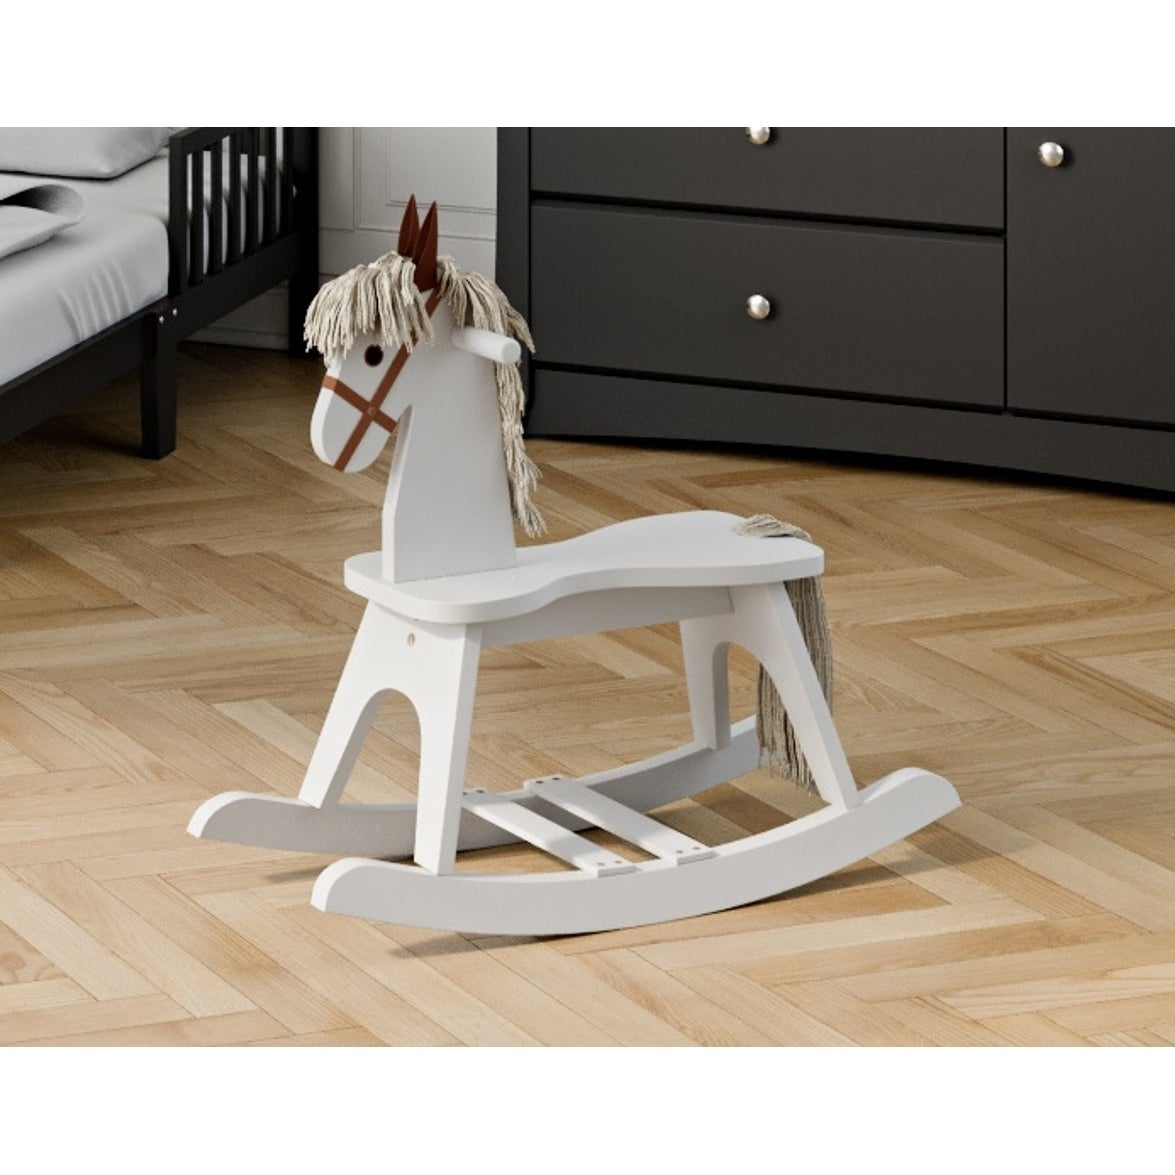 Wooden Kids Rocking Horse Ride Toy For Toddlers And Small Children